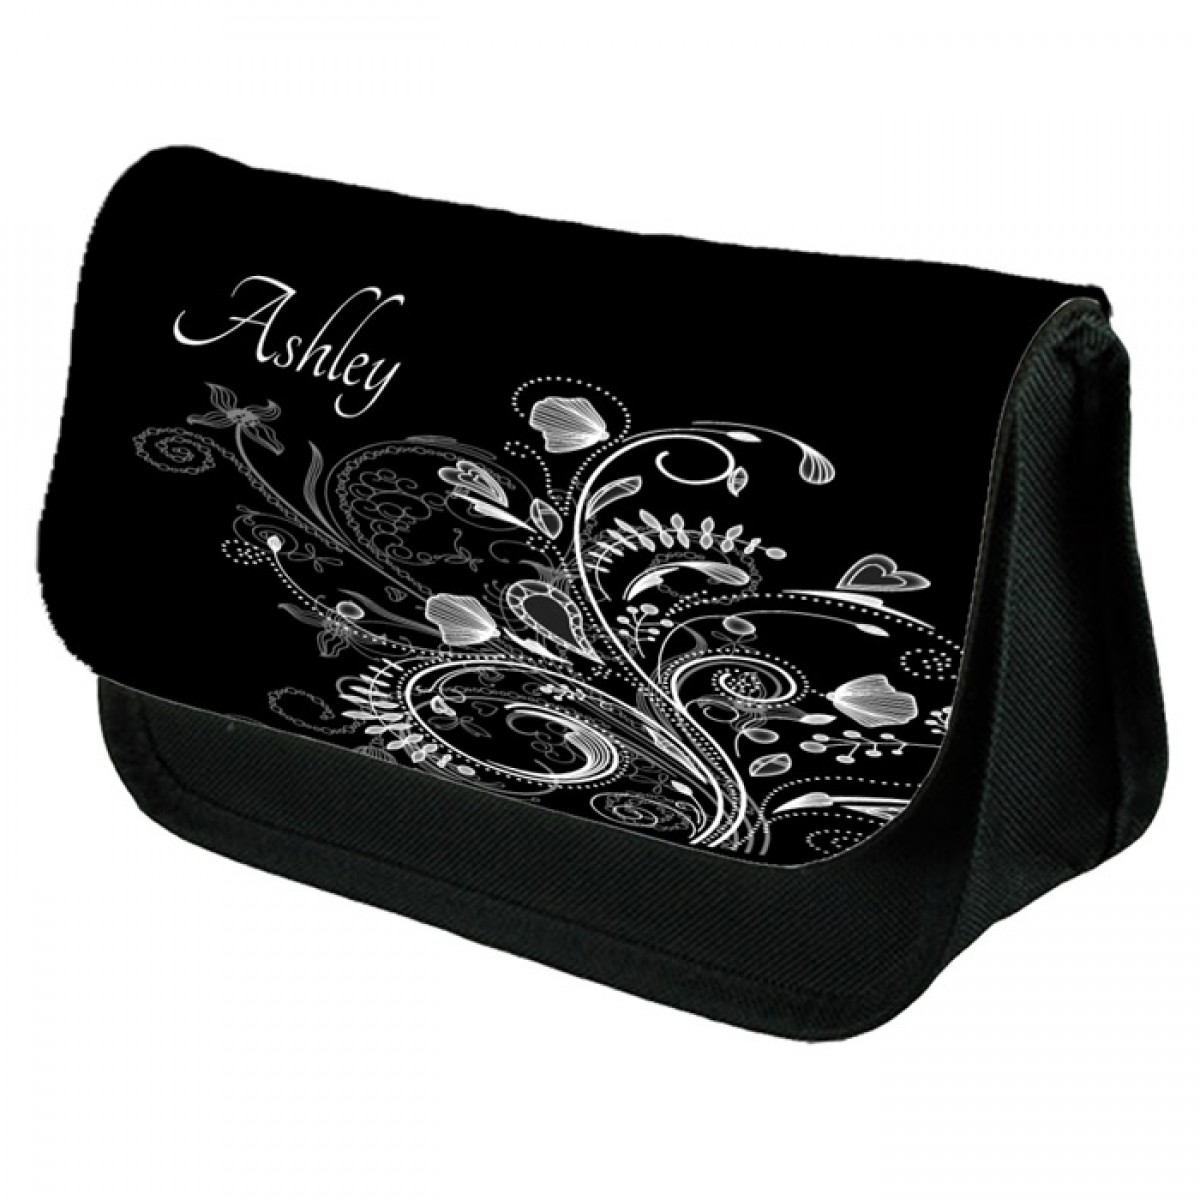 Beautiful Classic Scrolls On This Make Up Bag Personalised / Cosmetic Bag  Perfect Gift Idea for Her. Favours Birthdays Christmas.